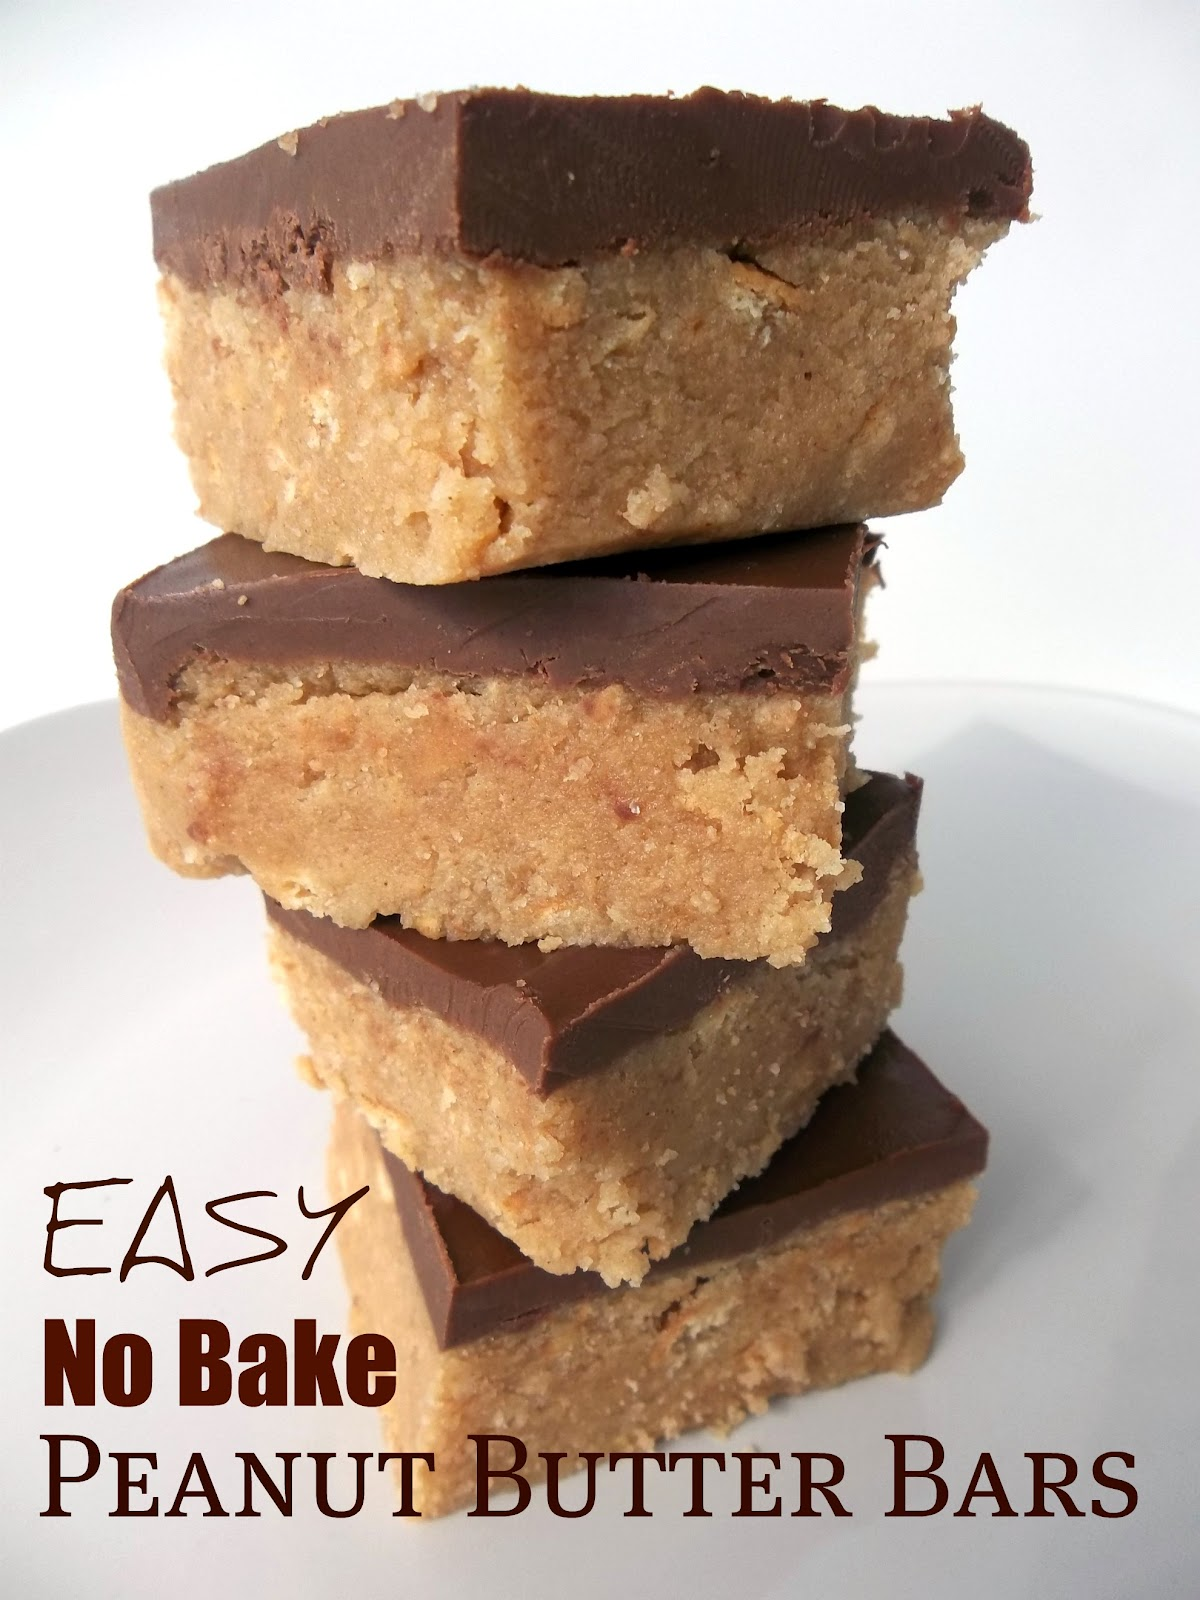 Easy peanut butter and chocolate dessert recipes